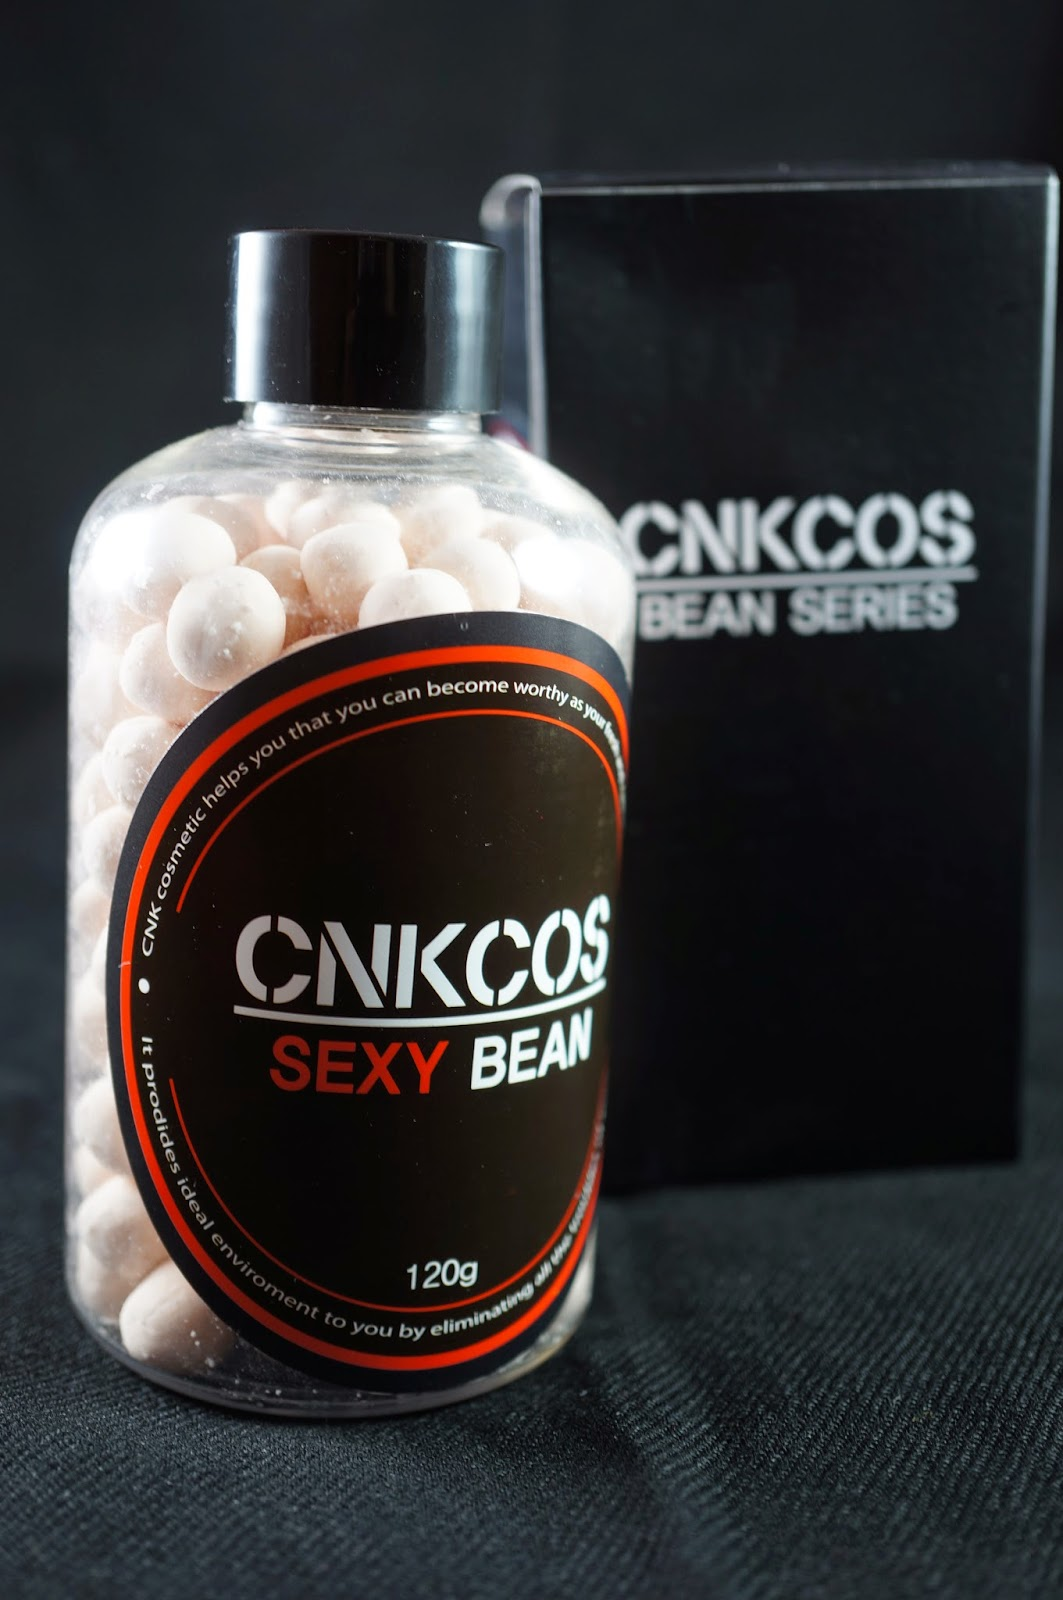 Memebox Superbox 37 At Home Unboxing Review CNKCOS Sexy Beans